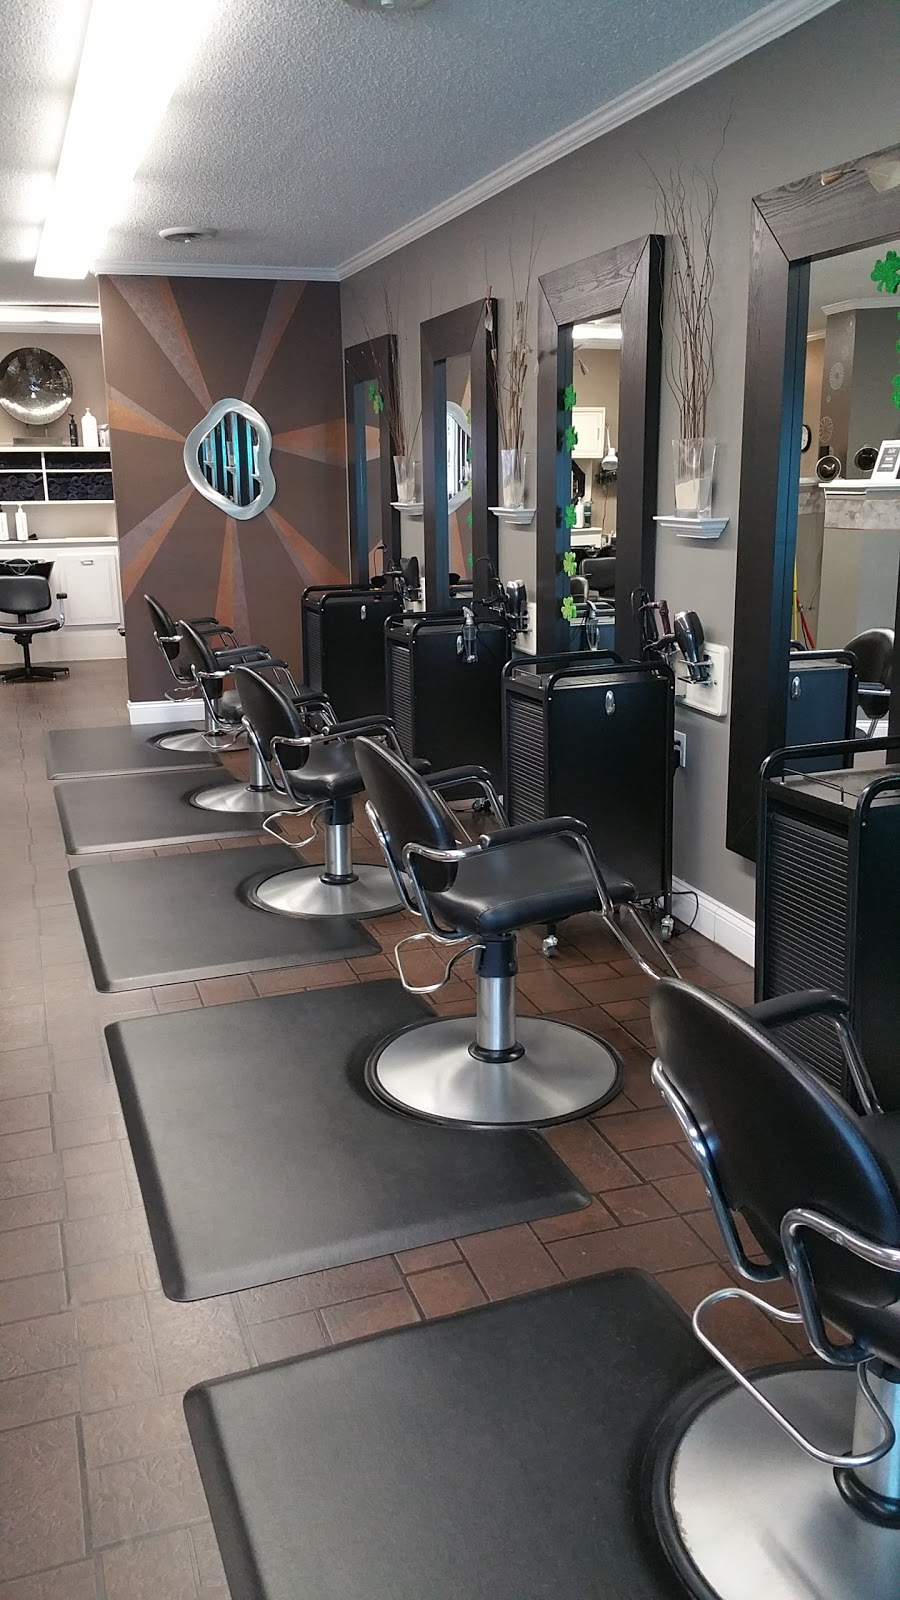 Hair Shaak - hair care  | Photo 4 of 7 | Address: 172 Deanna Dr, Lowell, IN 46356, USA | Phone: (219) 696-6900